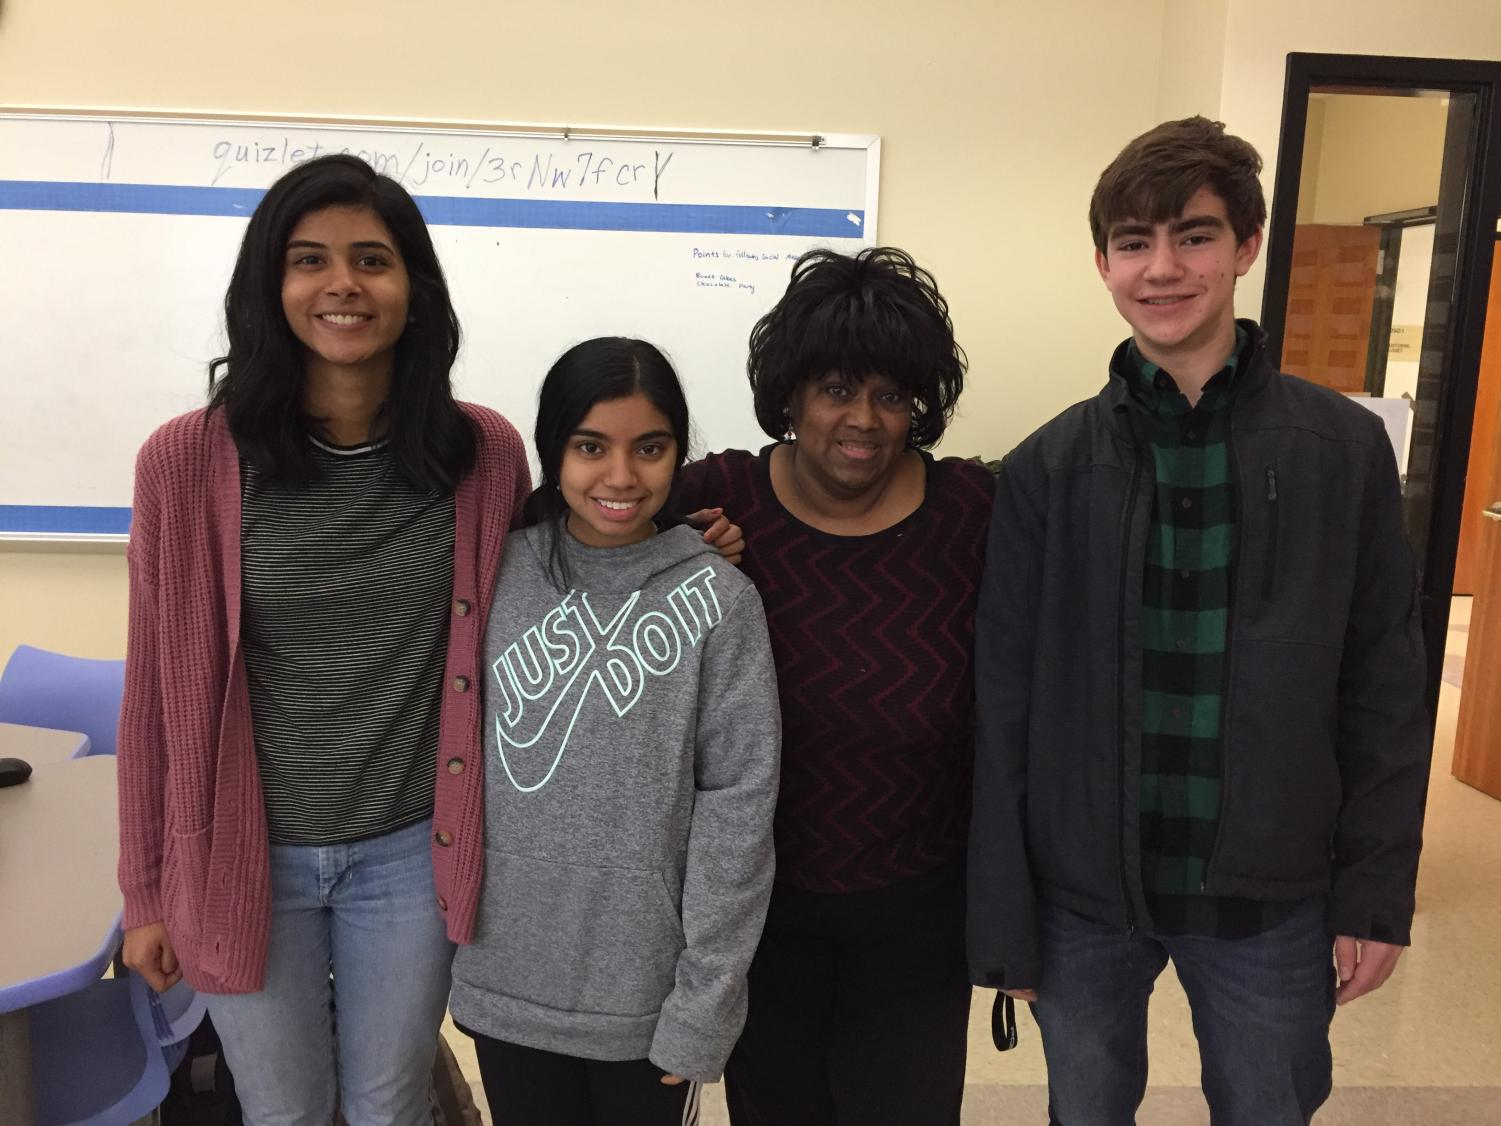 Ms. Upshur with student members of FBLA. From left to right: Angela Scaria, Shruthi Saravanan, Ms. Upshur, and Harrison Iles.